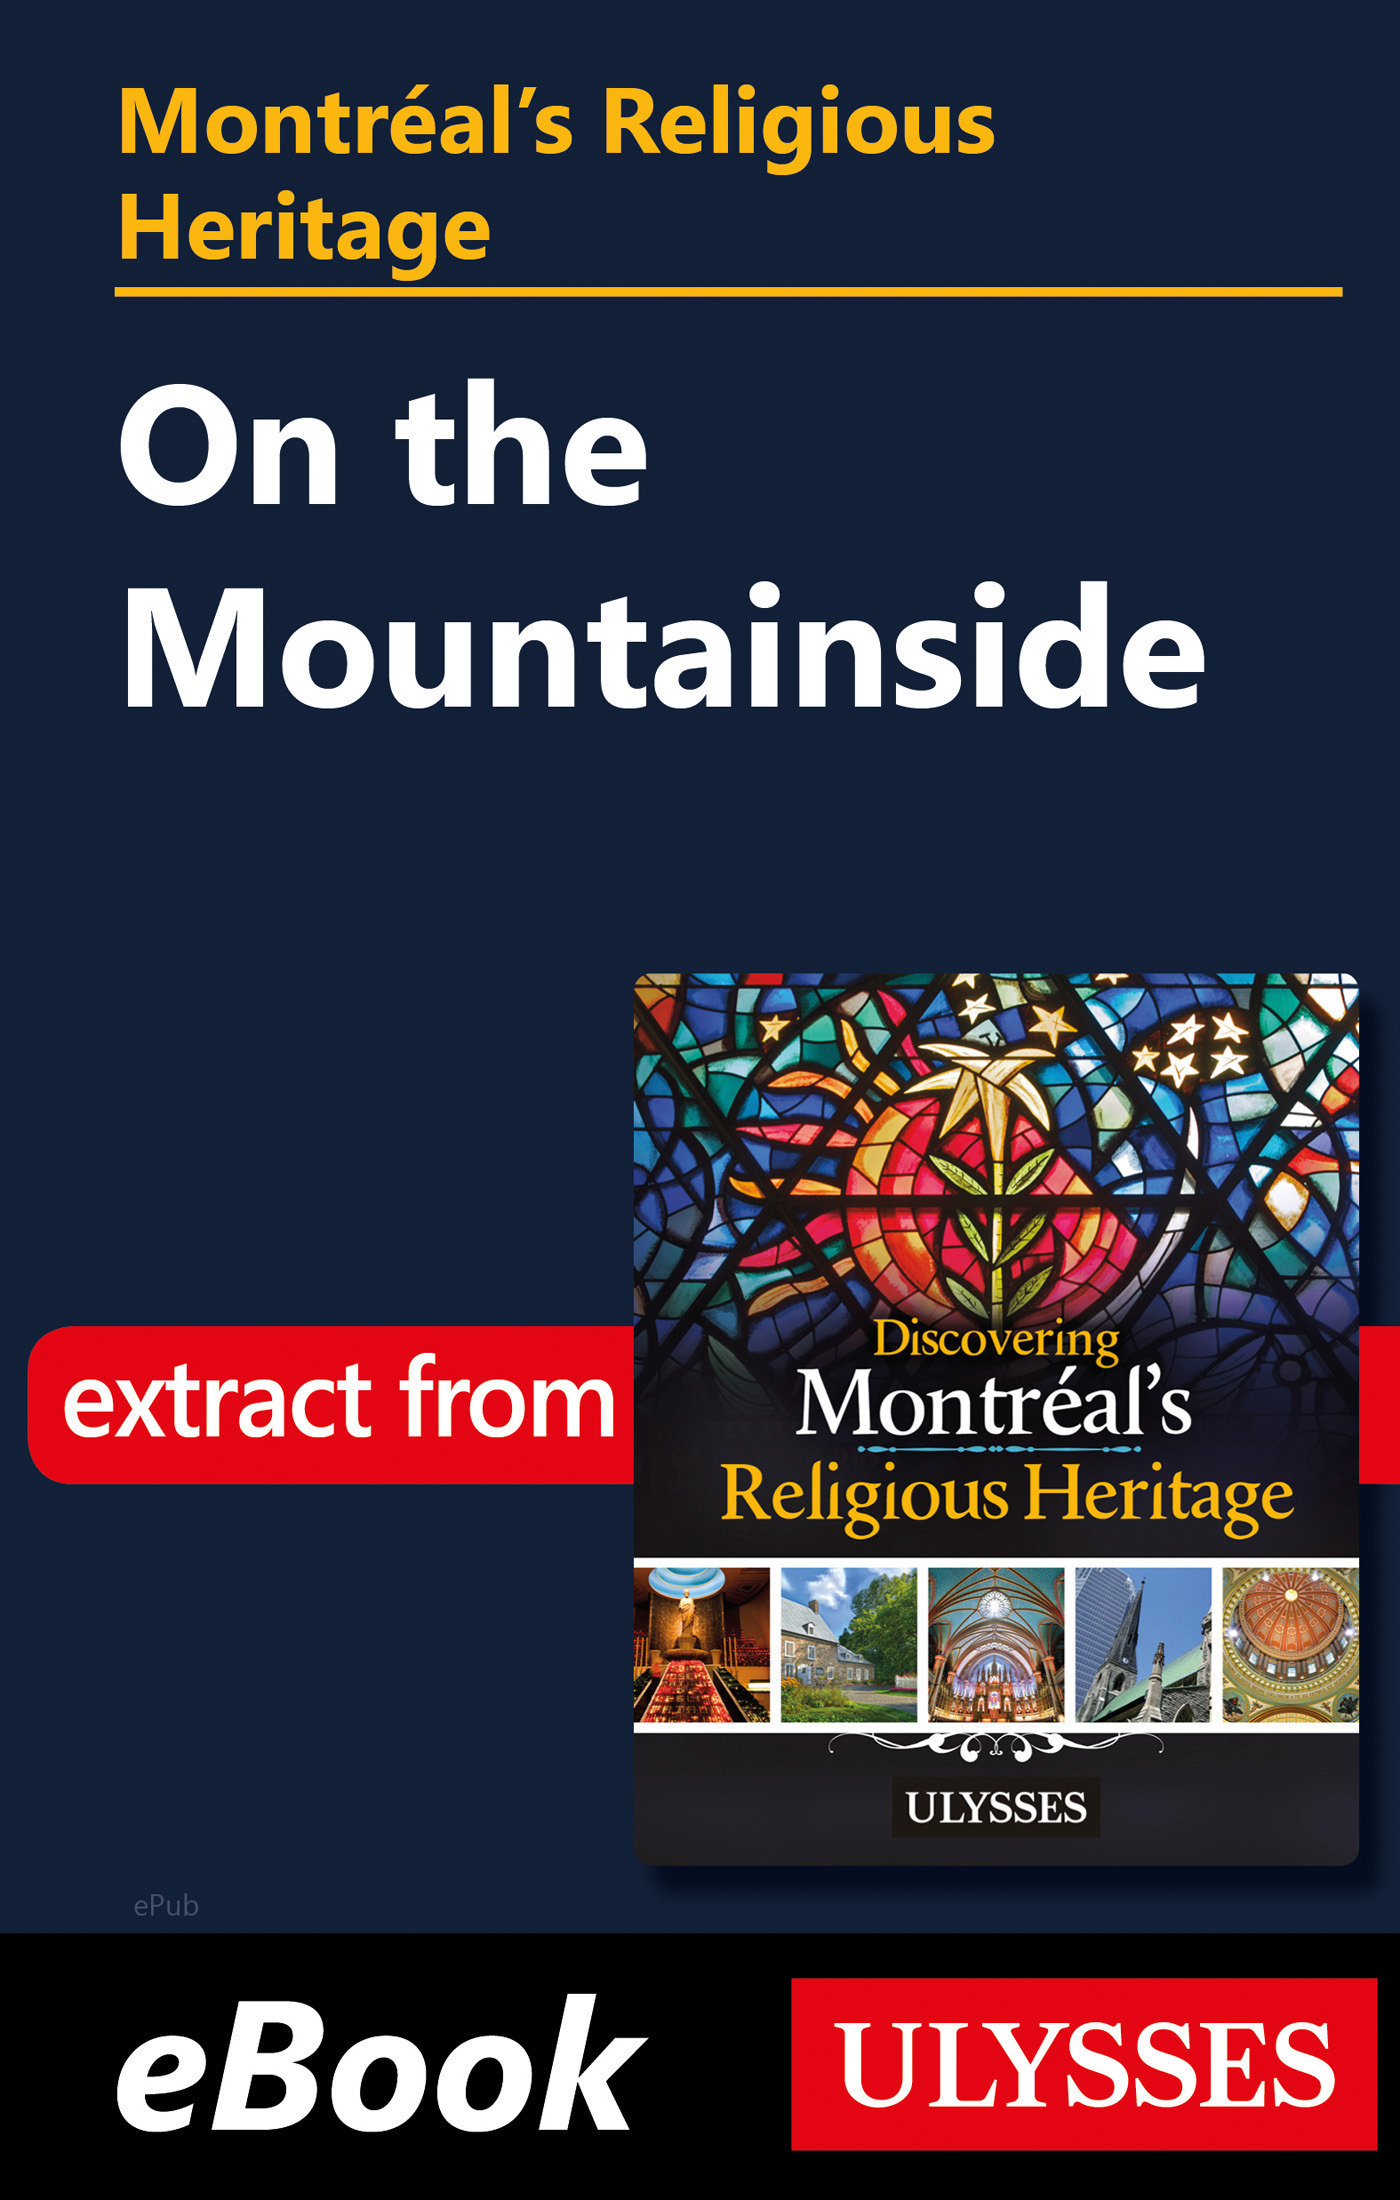 Montréal's Religious Heritage: On the Mountainside